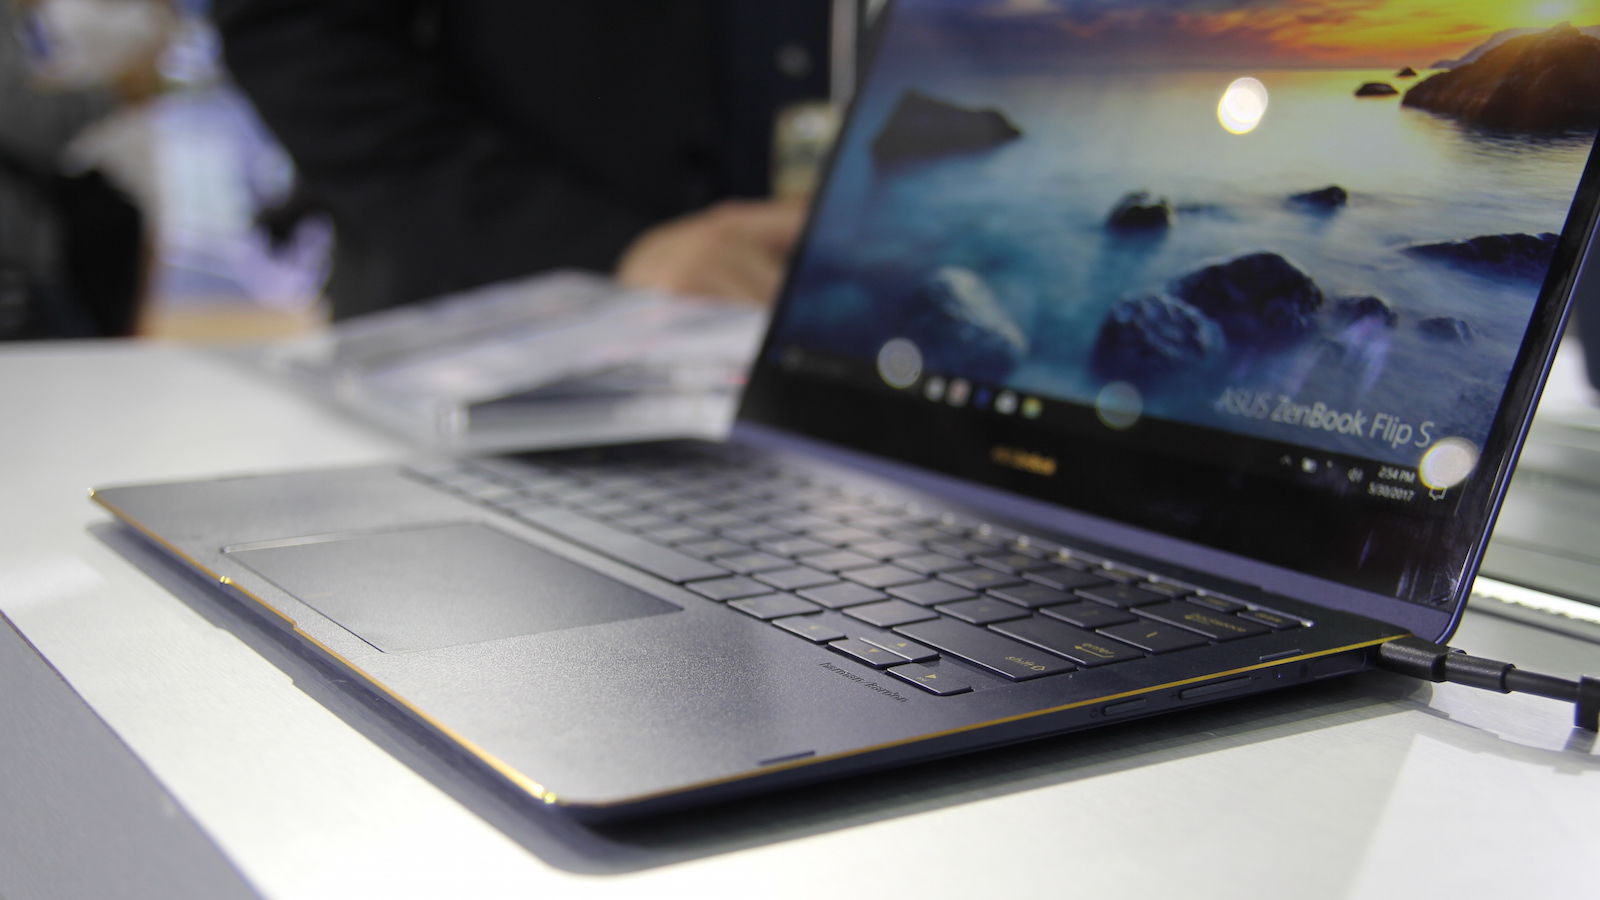 Asus Upgrades its Zenbook Flipbook S